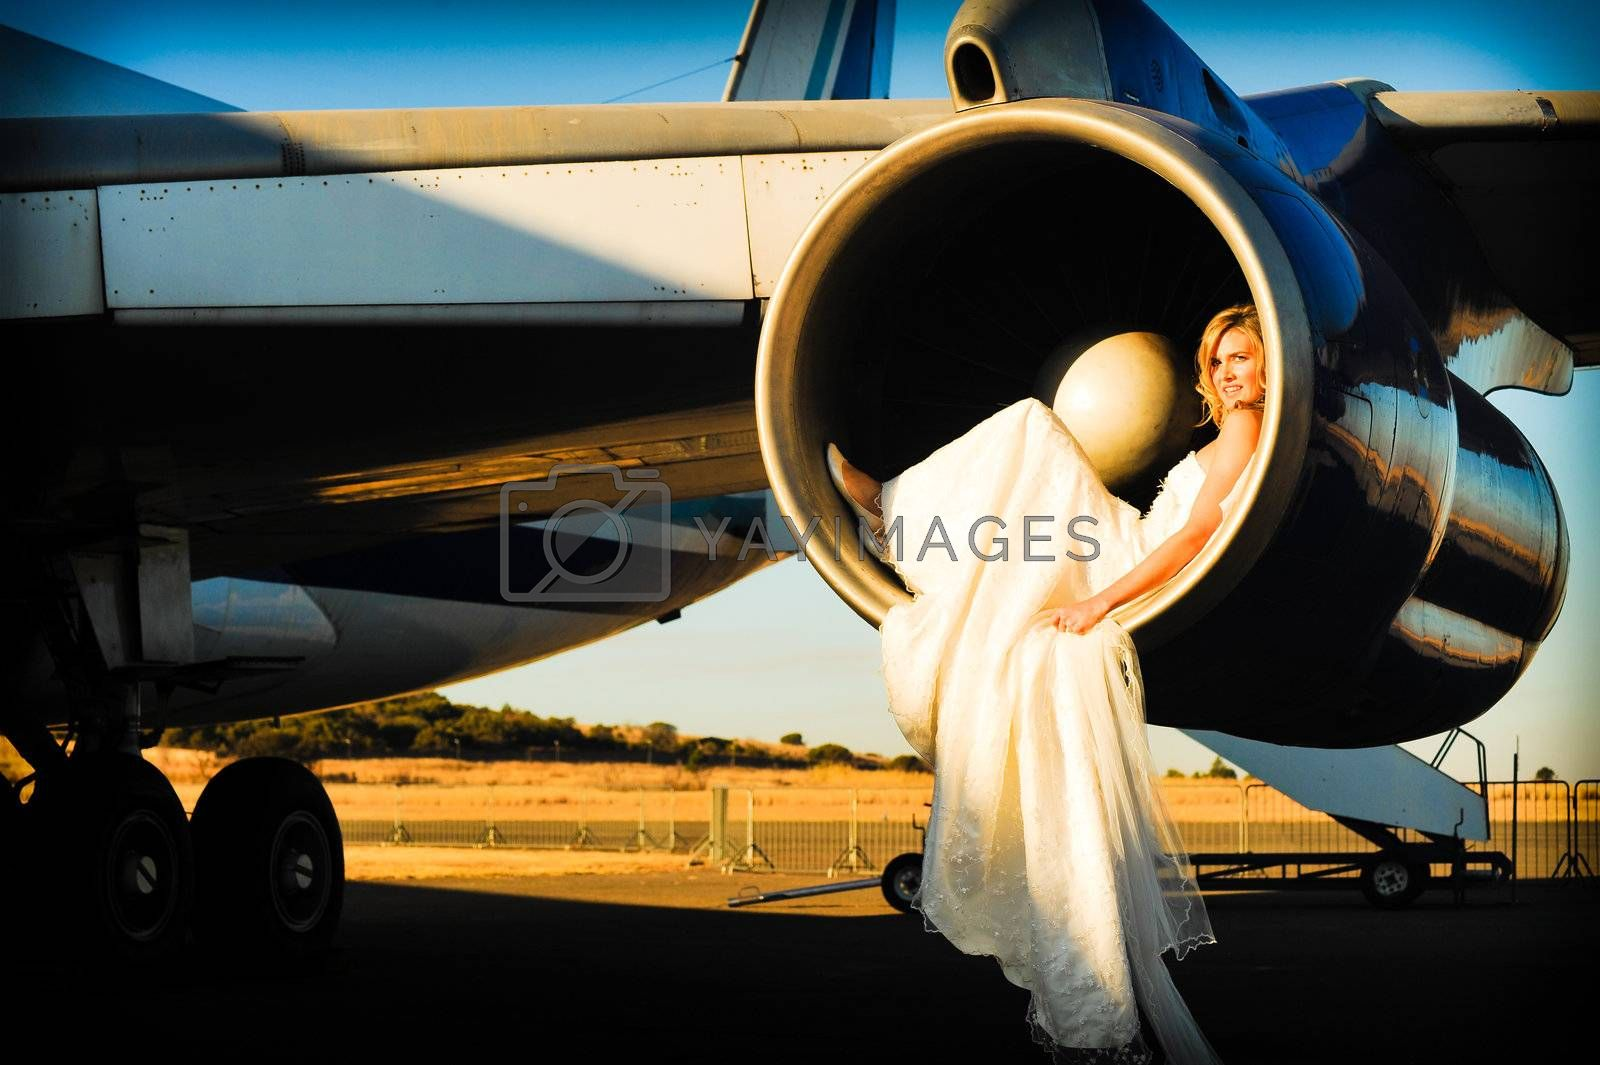 sexy young adult wedding model laying inside the engine intake of  passenger aircraft